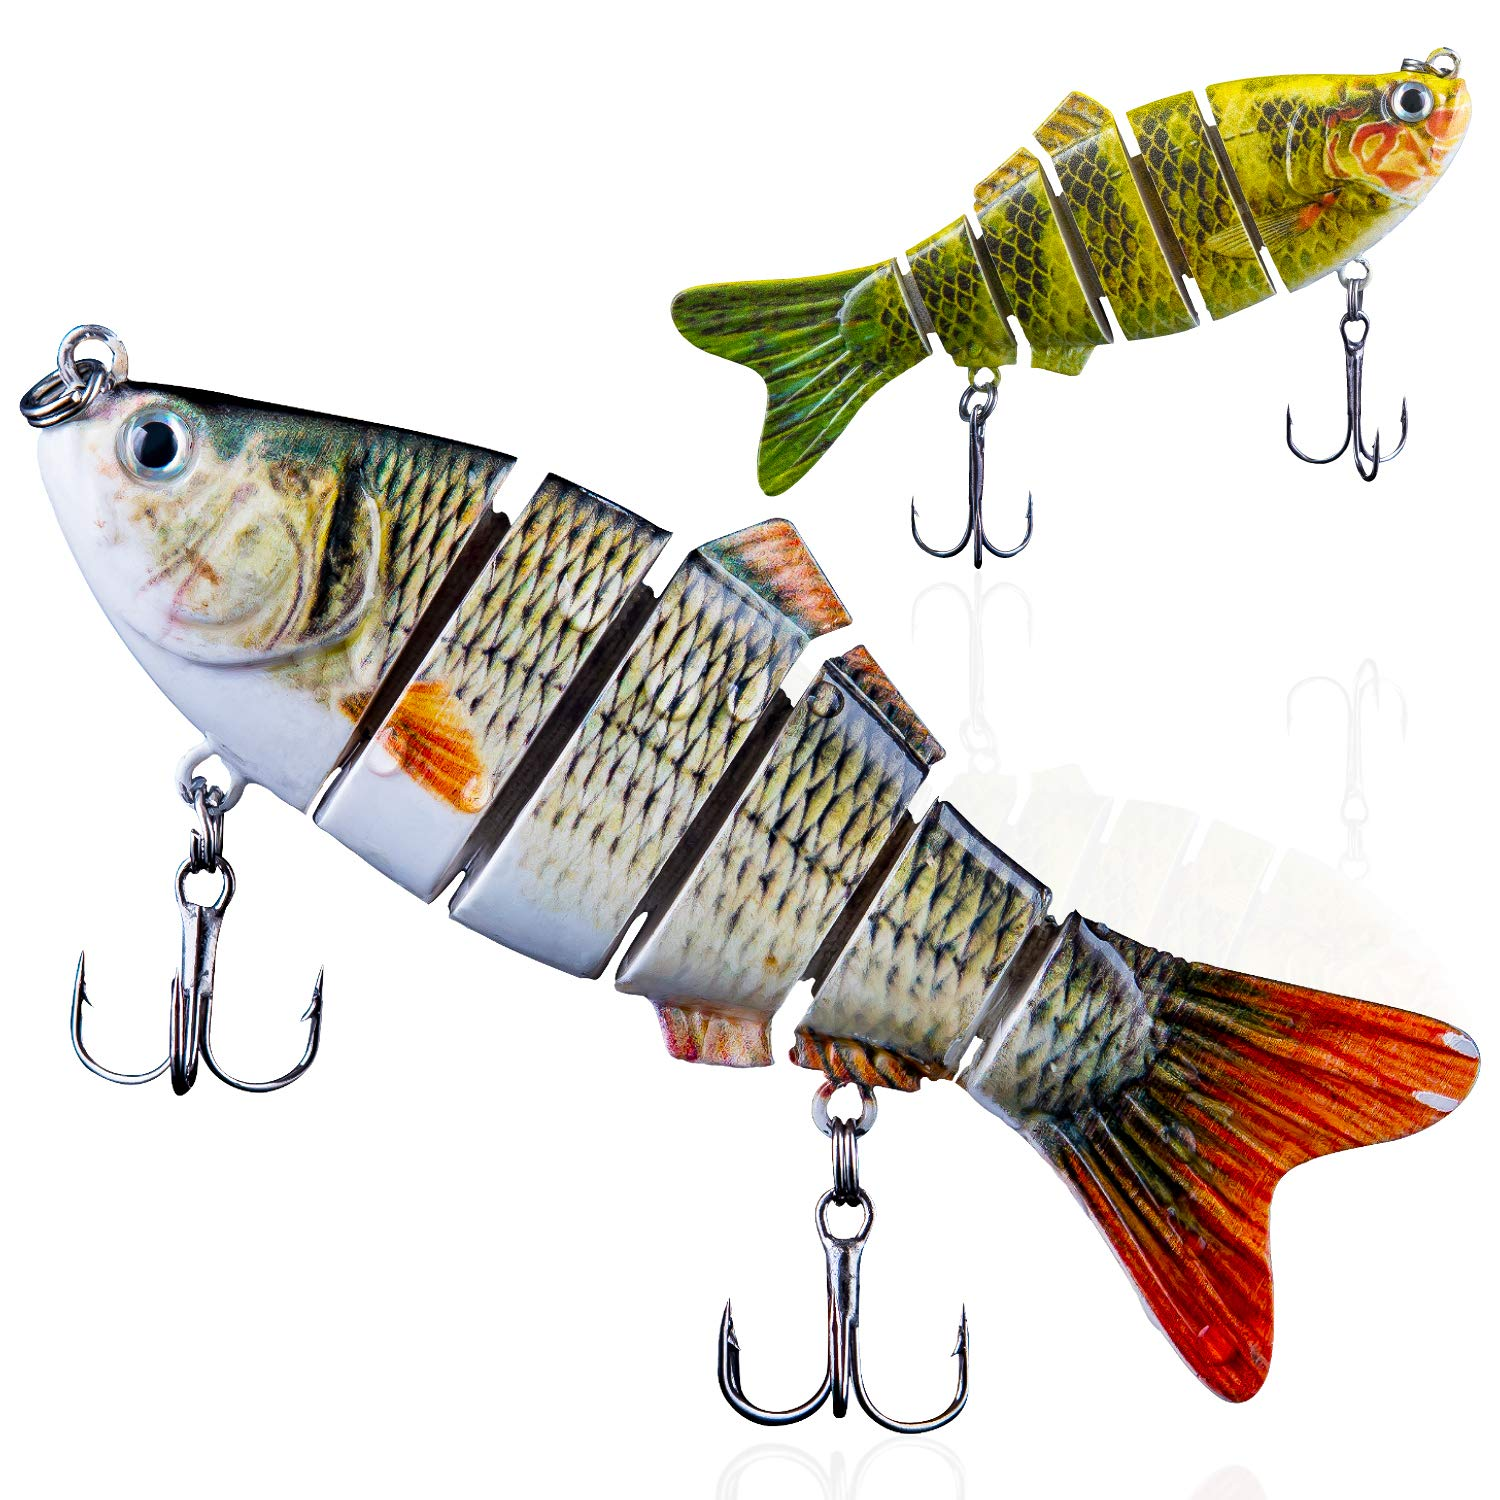 Multi-Jointed Hard Fishing Lure Bait Swimbait Bass Pike Minnow Hook Tackle